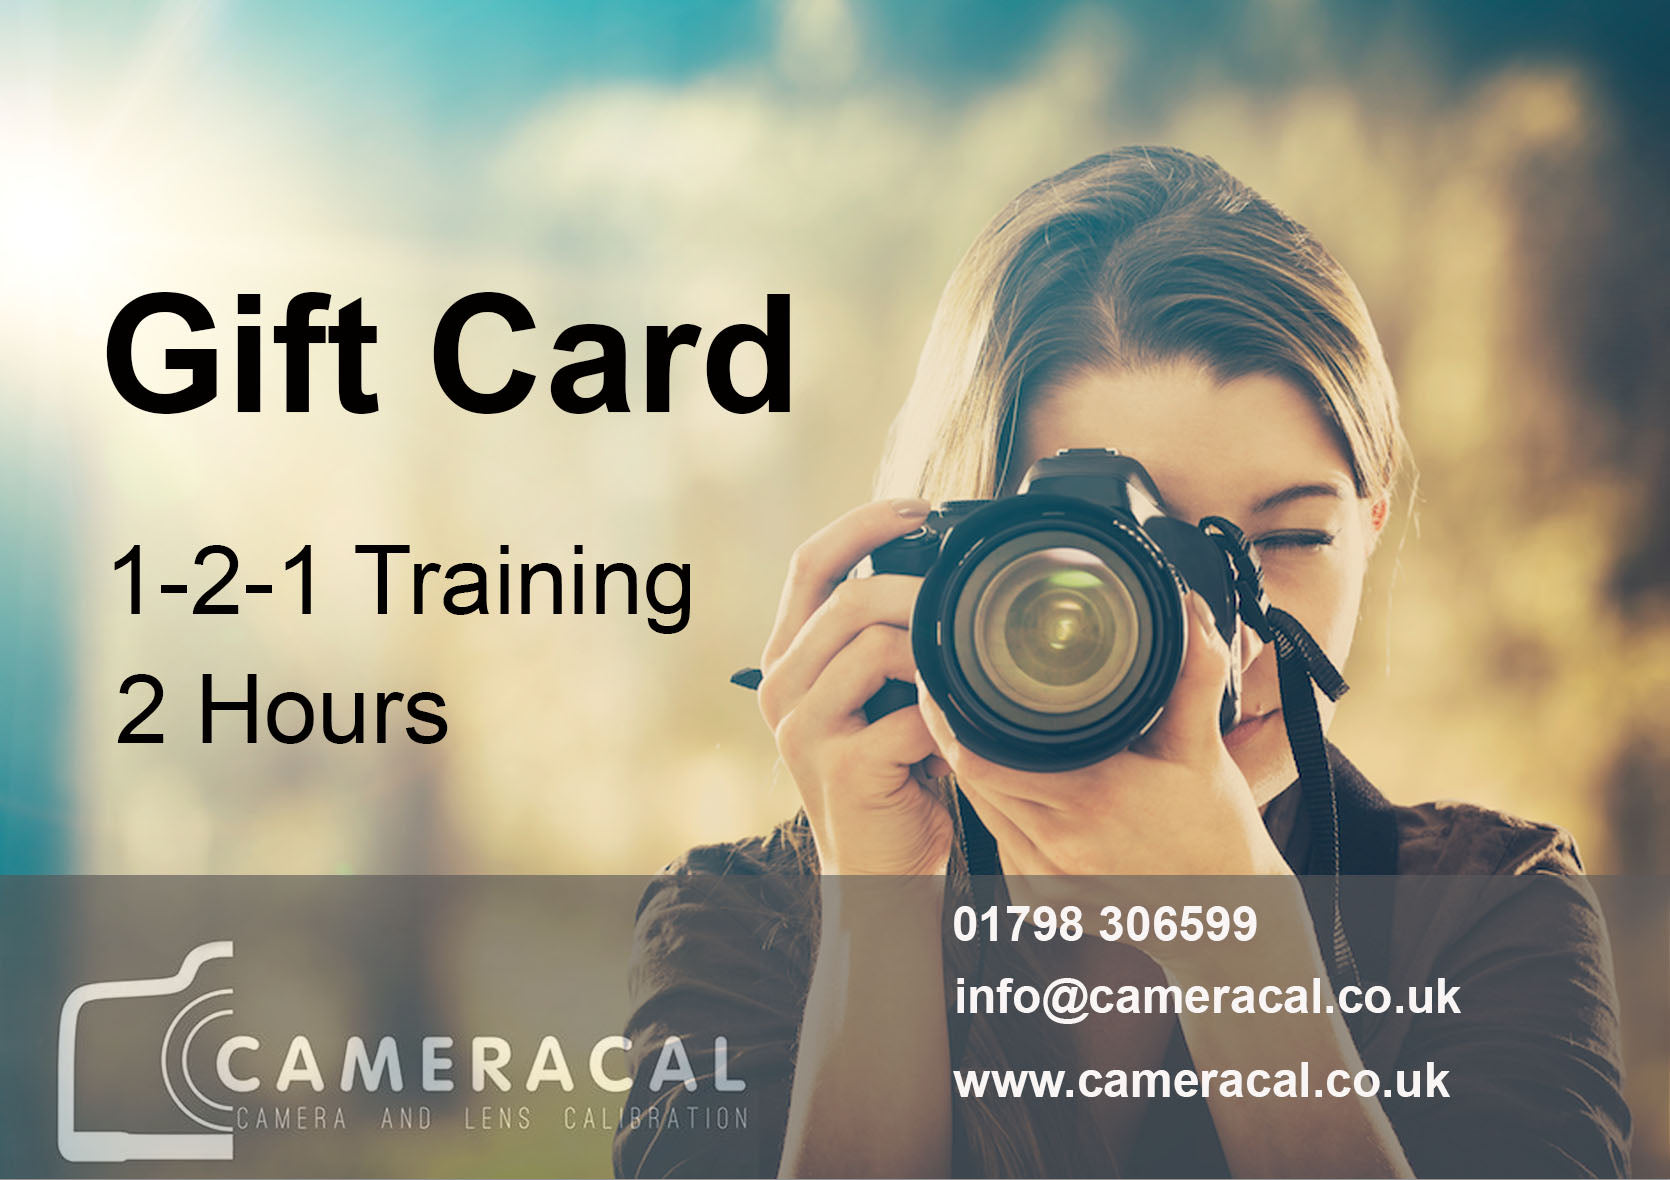 1-2-1 Training  Gift Card